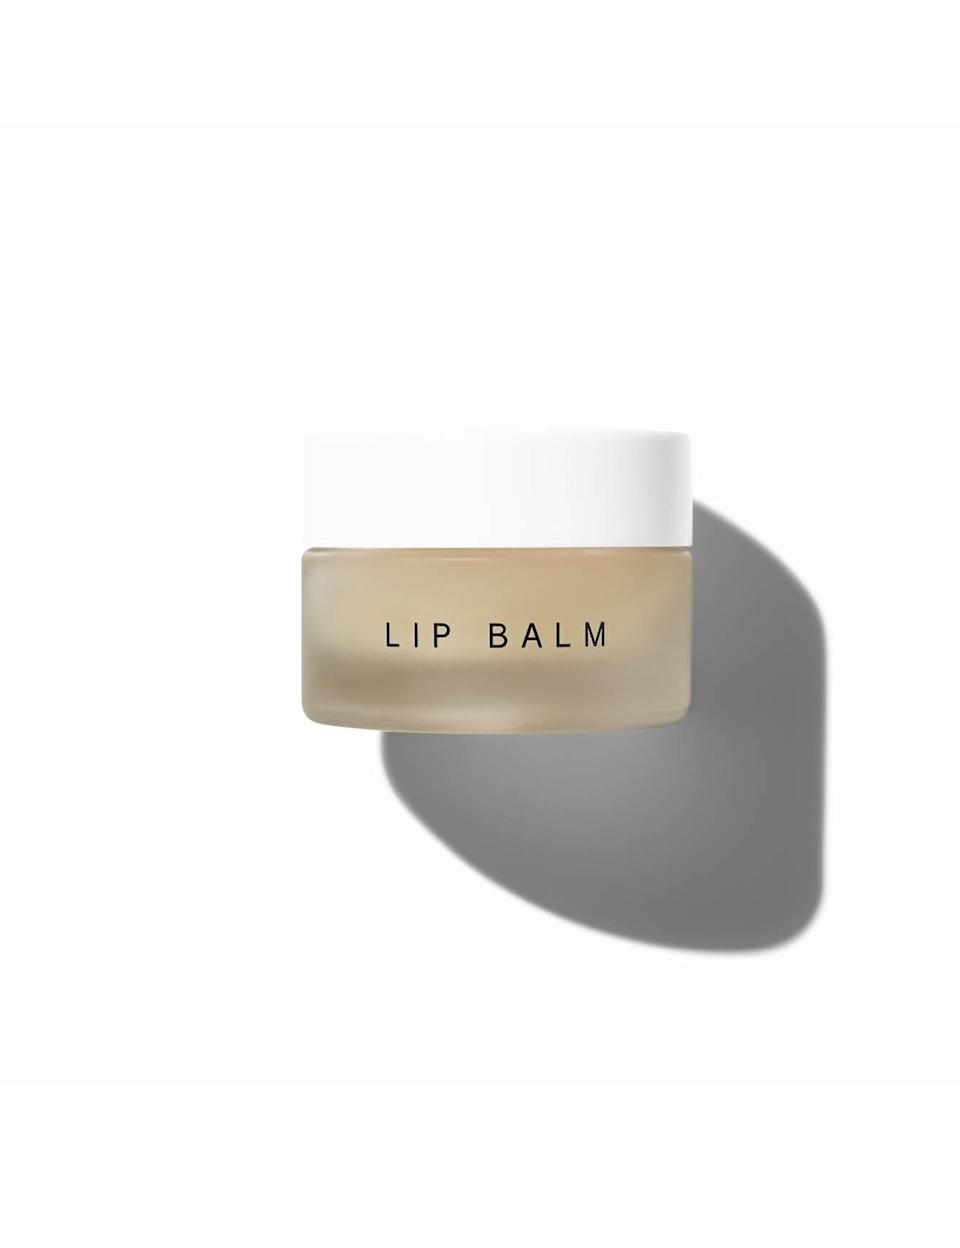 """<h3>Dr. Barbara Sturm Lip Balm </h3><br>Celebrities and editors alike can't get enough of Dr. Barbara Sturm's skin-care line, so when it came to creating a lip balm, the brand had to deliver. No surprise here: It did, creating a blend of oils, butters, and waxes in one super-soft, non-sticky balm that can even be used for a subtle glow on eyelids and cheekbones.<br><br><strong>Dr. Barbara Sturm</strong> LIP BALM, $, available at <a href=""""https://go.skimresources.com/?id=30283X879131&url=https%3A%2F%2Fwww.molecular-cosmetics.com%2Flip-balm"""" rel=""""nofollow noopener"""" target=""""_blank"""" data-ylk=""""slk:Molecular Cosmetics"""" class=""""link rapid-noclick-resp"""">Molecular Cosmetics</a>"""